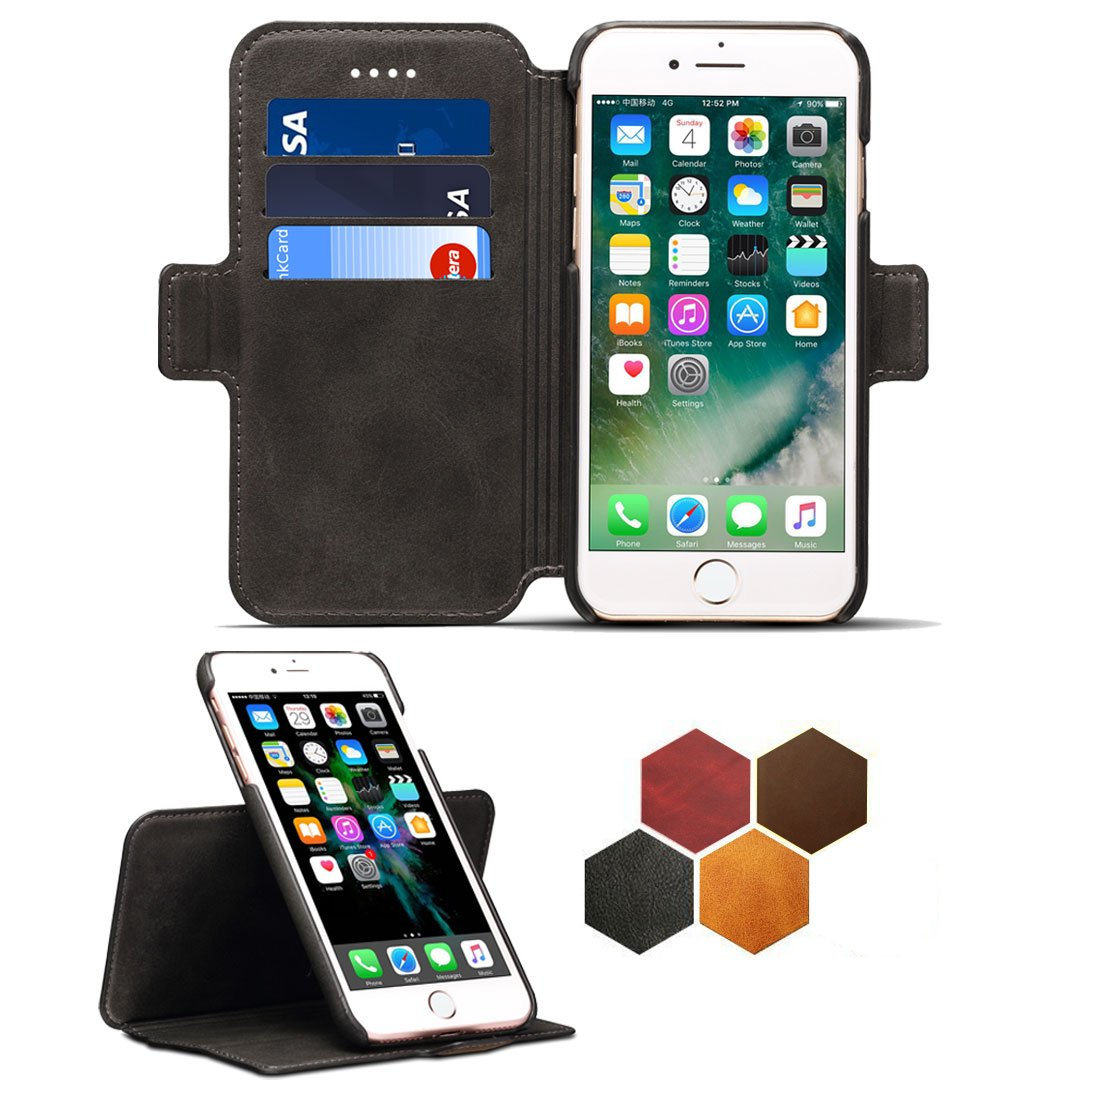 iPhone 8 Leather Case with Detachable SlimCase,iPhone 7 Genuine Leather Folio Flip Case Cover with Credit Card ID Holders,iPhone 6 Business Style Case Cover for Apple iPhone 6,6s by Sysmarts